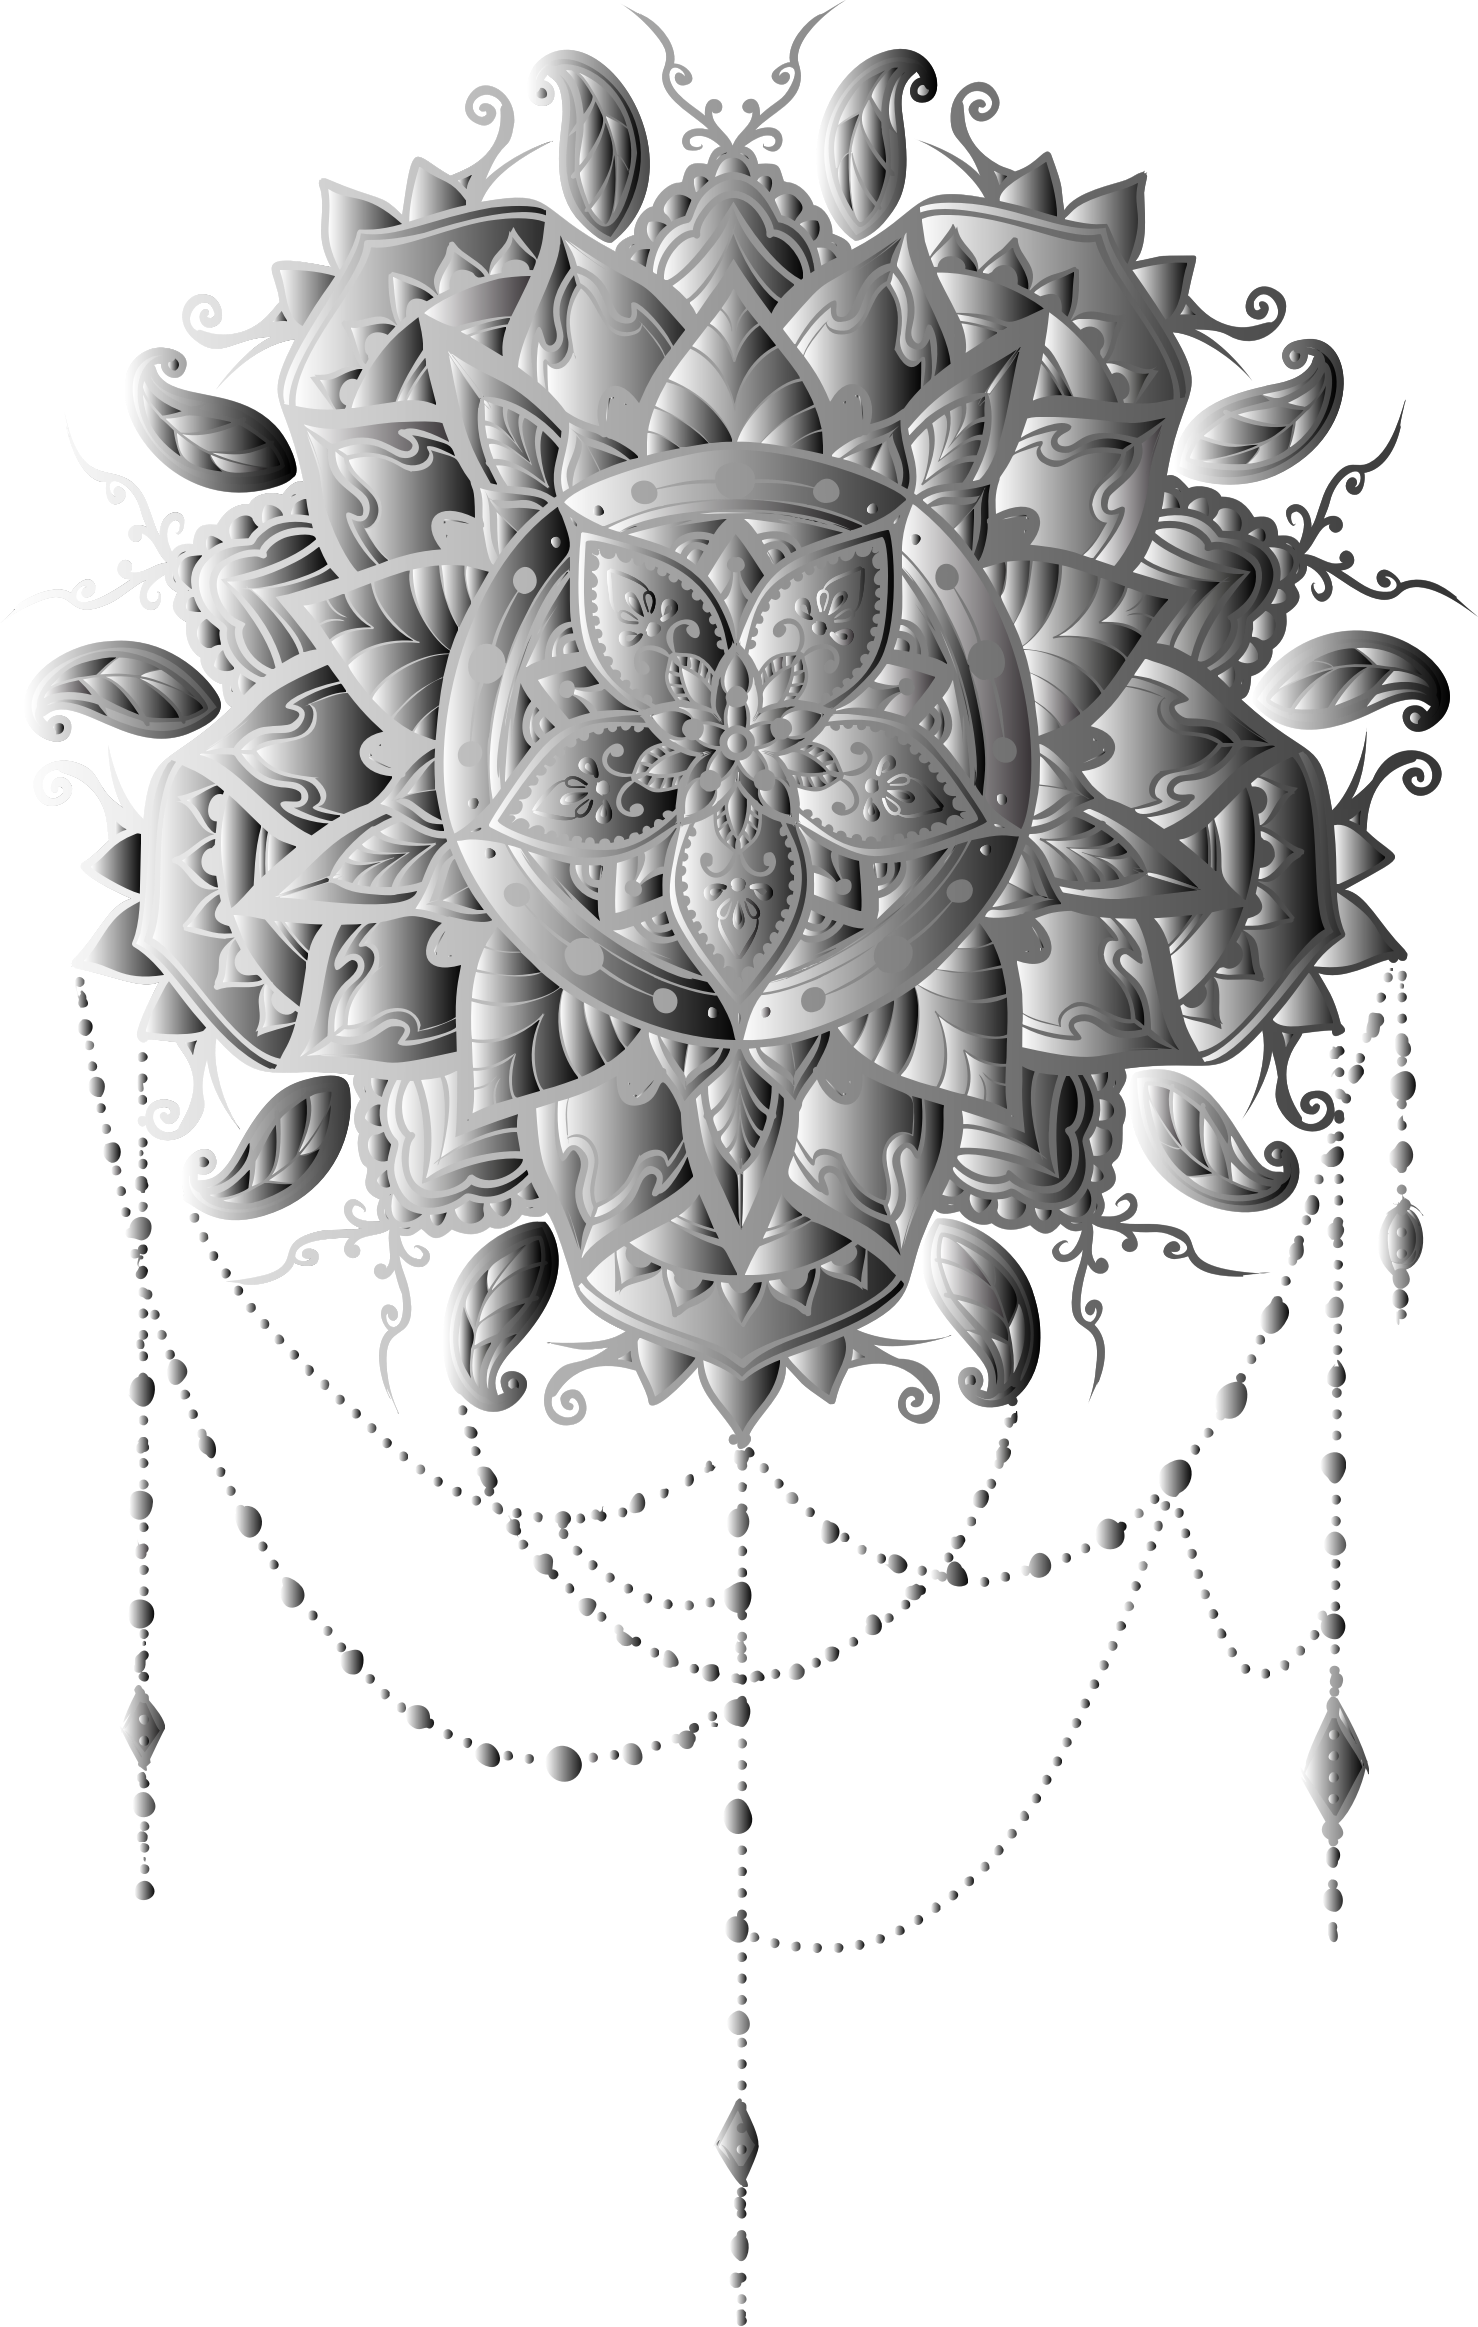 Grayscale Intricate Floral Mandala by GDJ